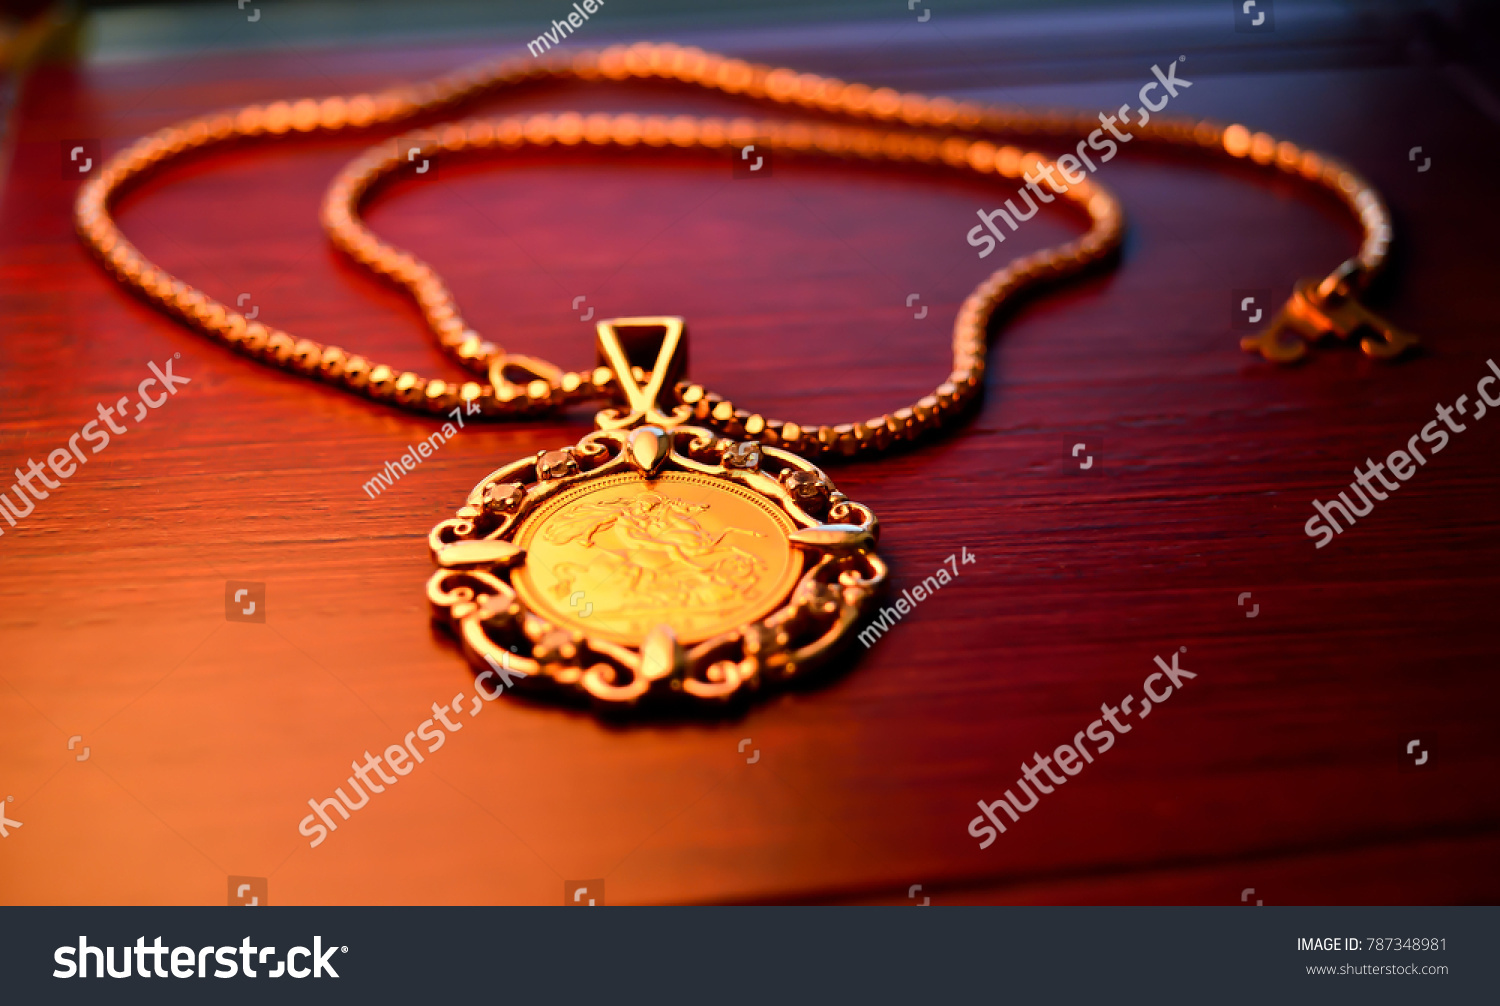 Gold sovereign coin jewelry pendant on stock photo royalty free gold sovereign coin as jewelry pendant on a chain aloadofball Images